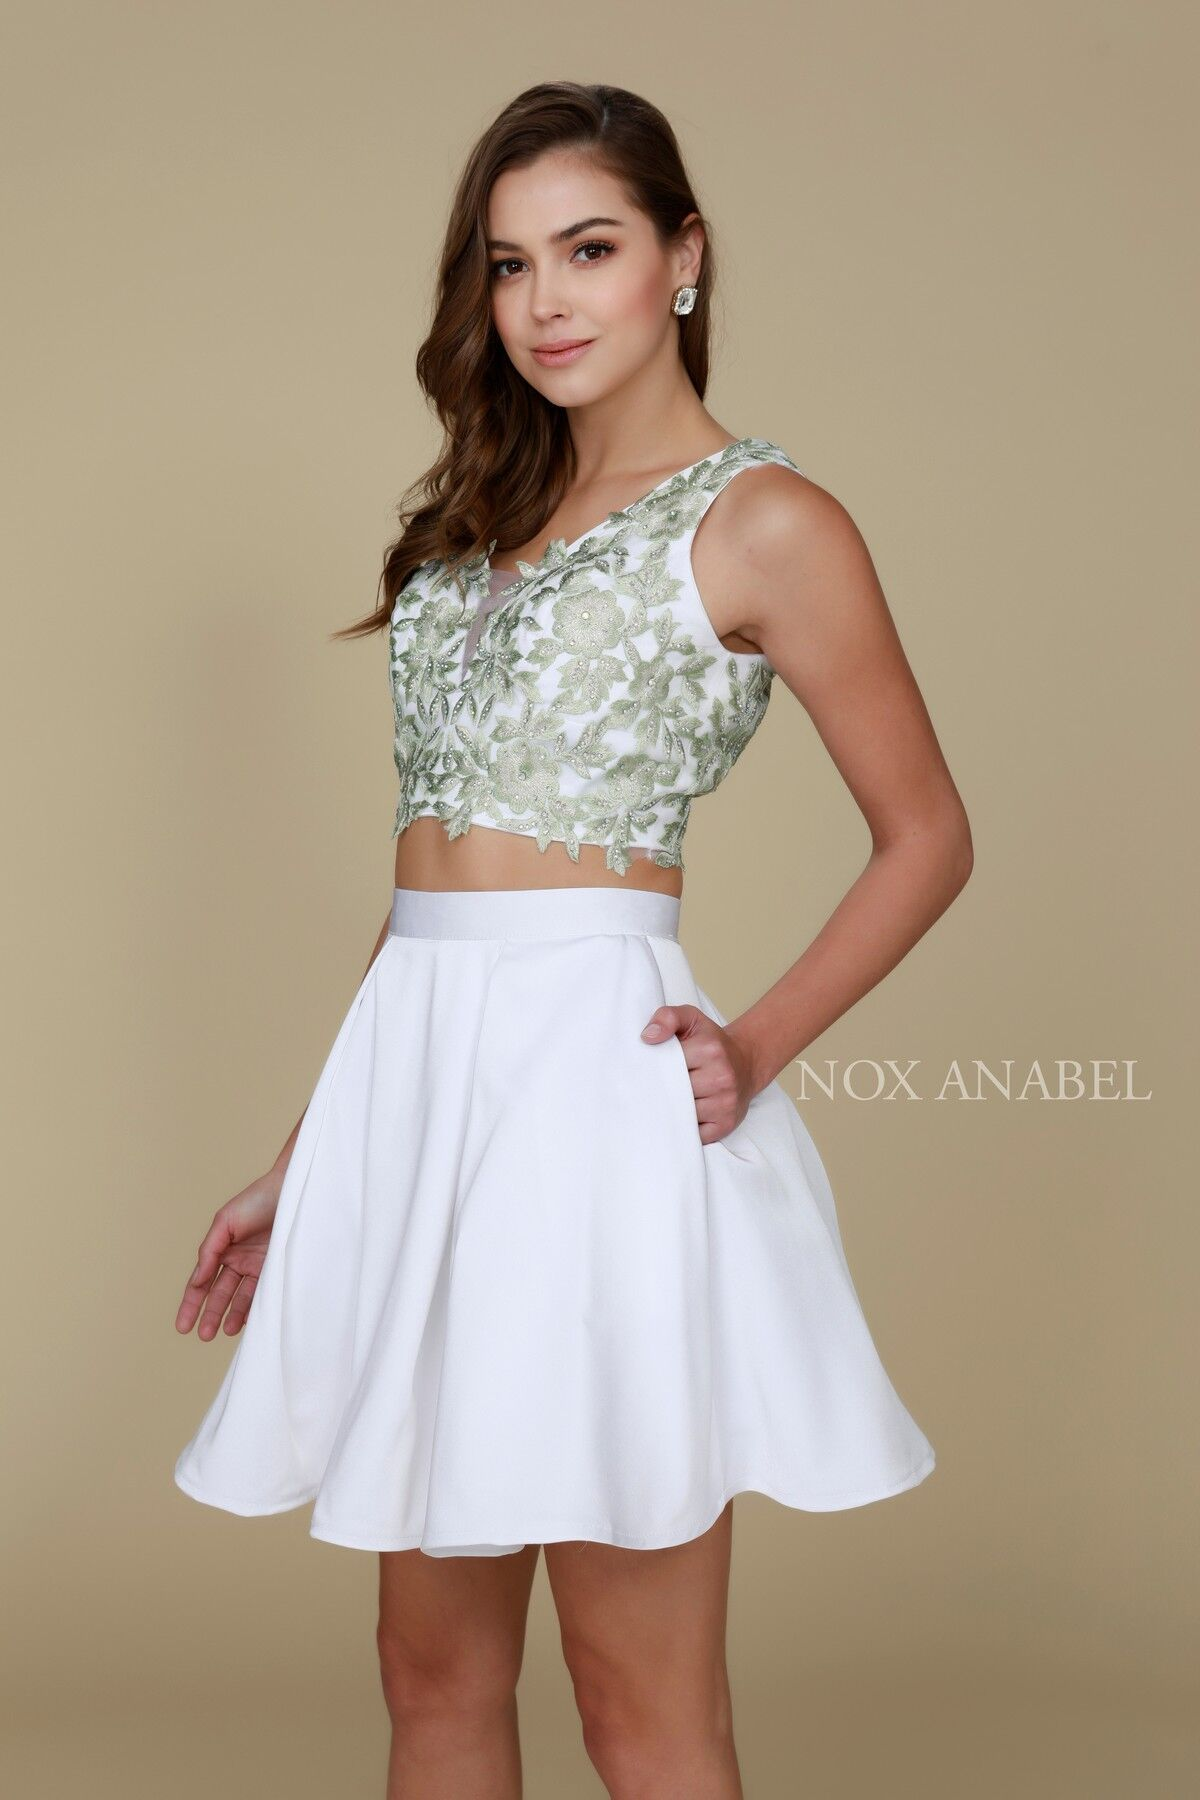 77a0c15048bf3 Short Homecoming Two Piece Set Prom Dress - The Dress Outlet Nox Anabel